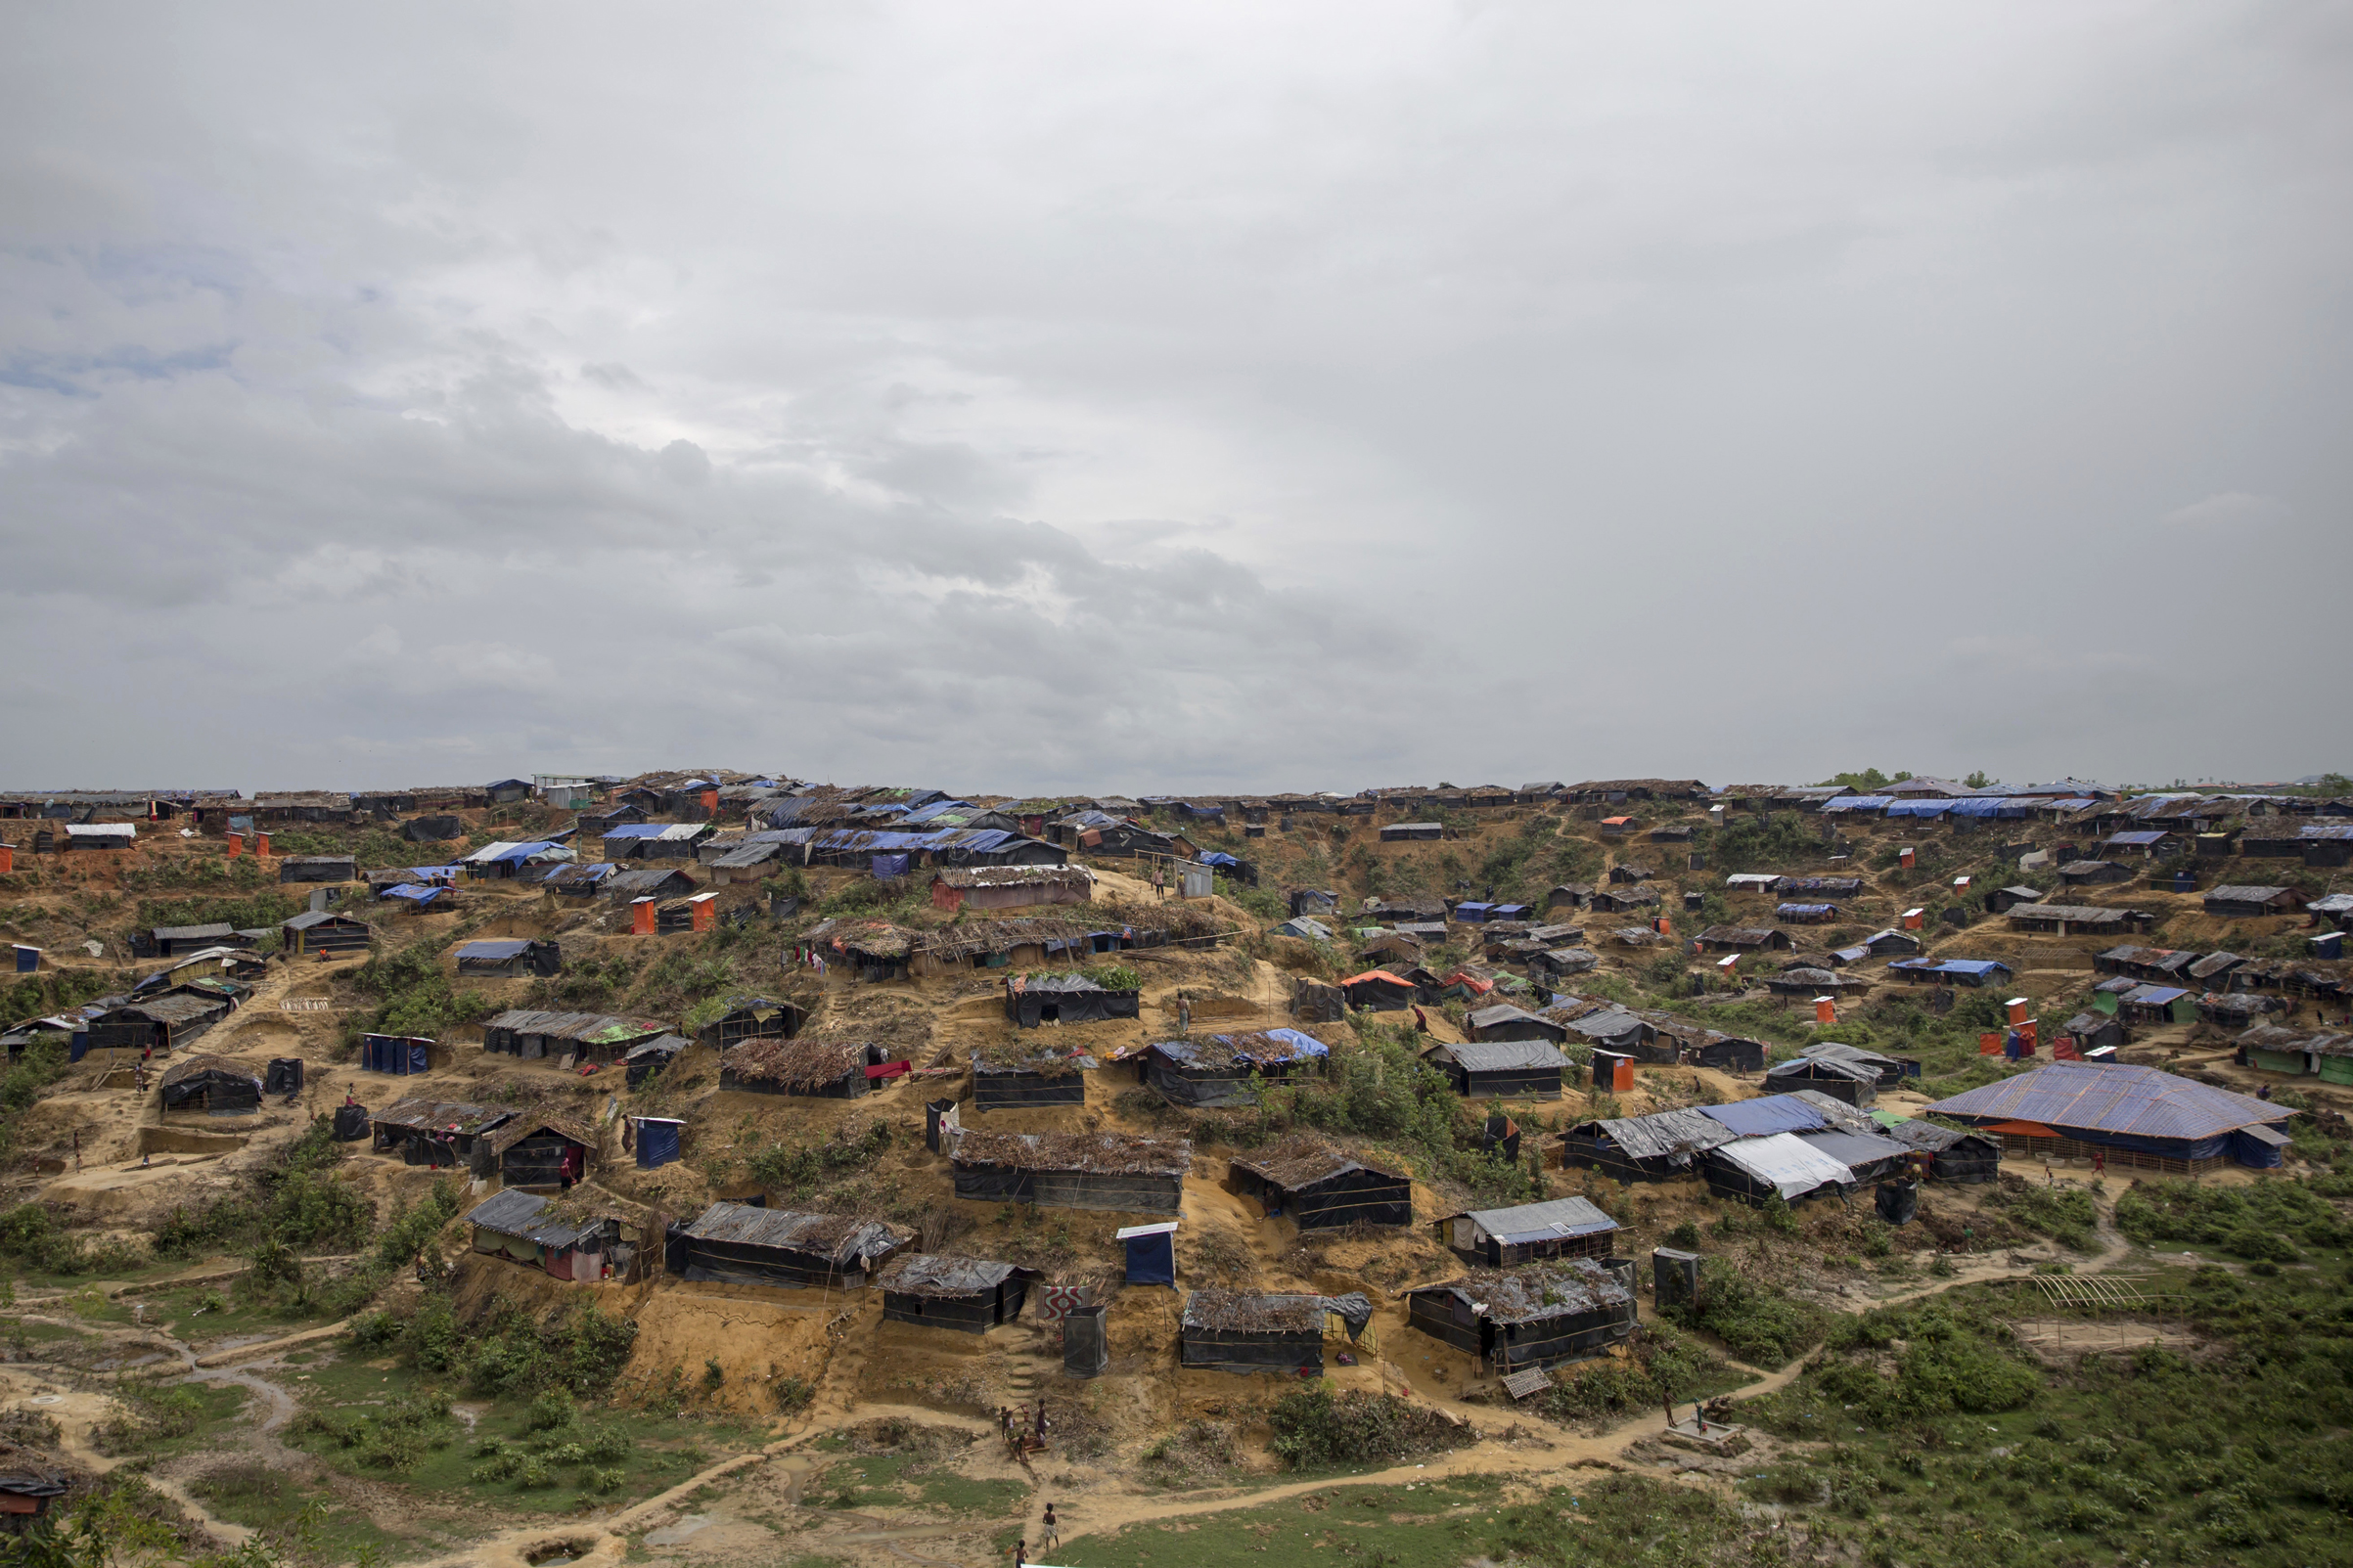 A newly established refugee camp for Rohingya Muslims in Thaingkhali, Bangladesh, on Oct. 19, 2017.